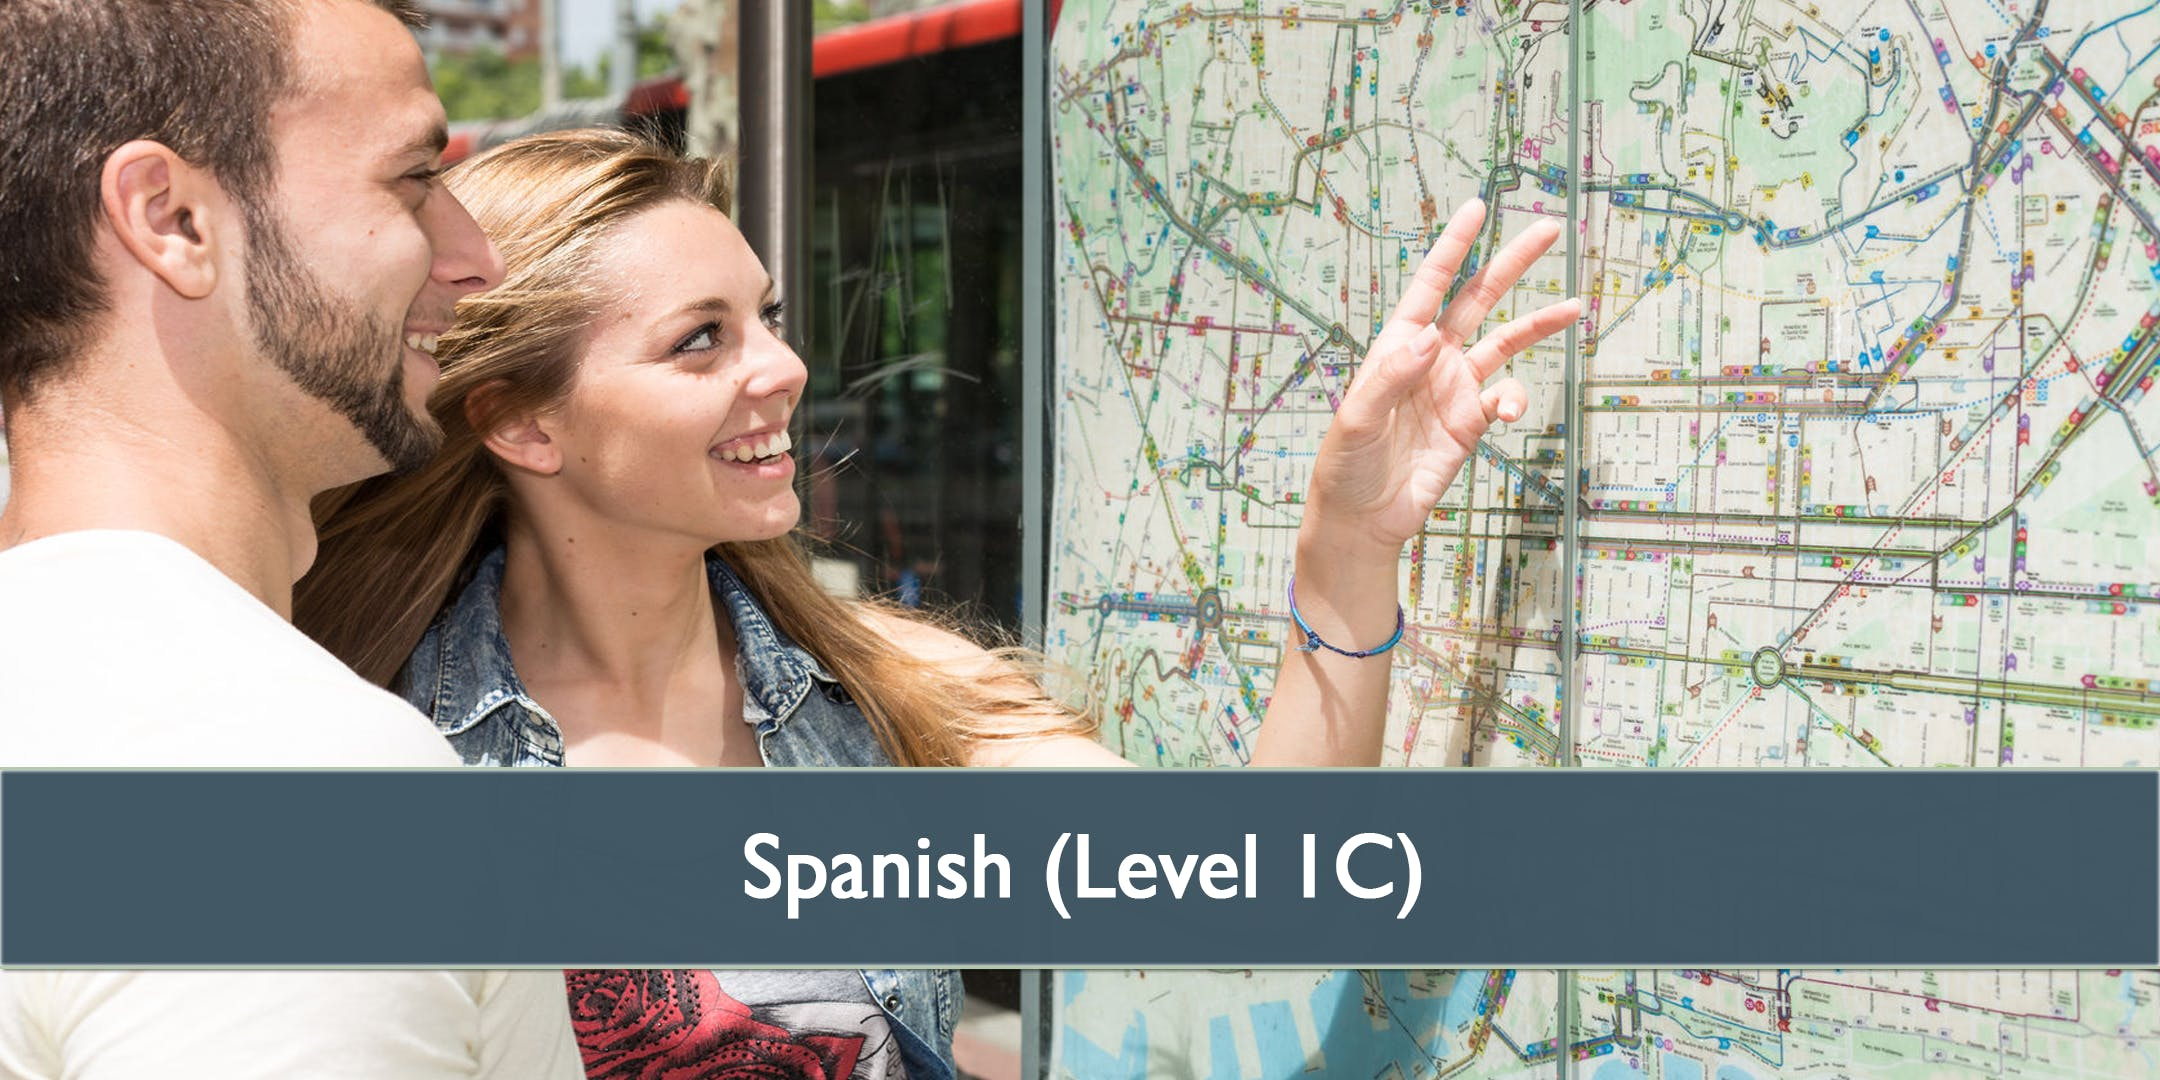 Spanish (Level 1C) - January 2019